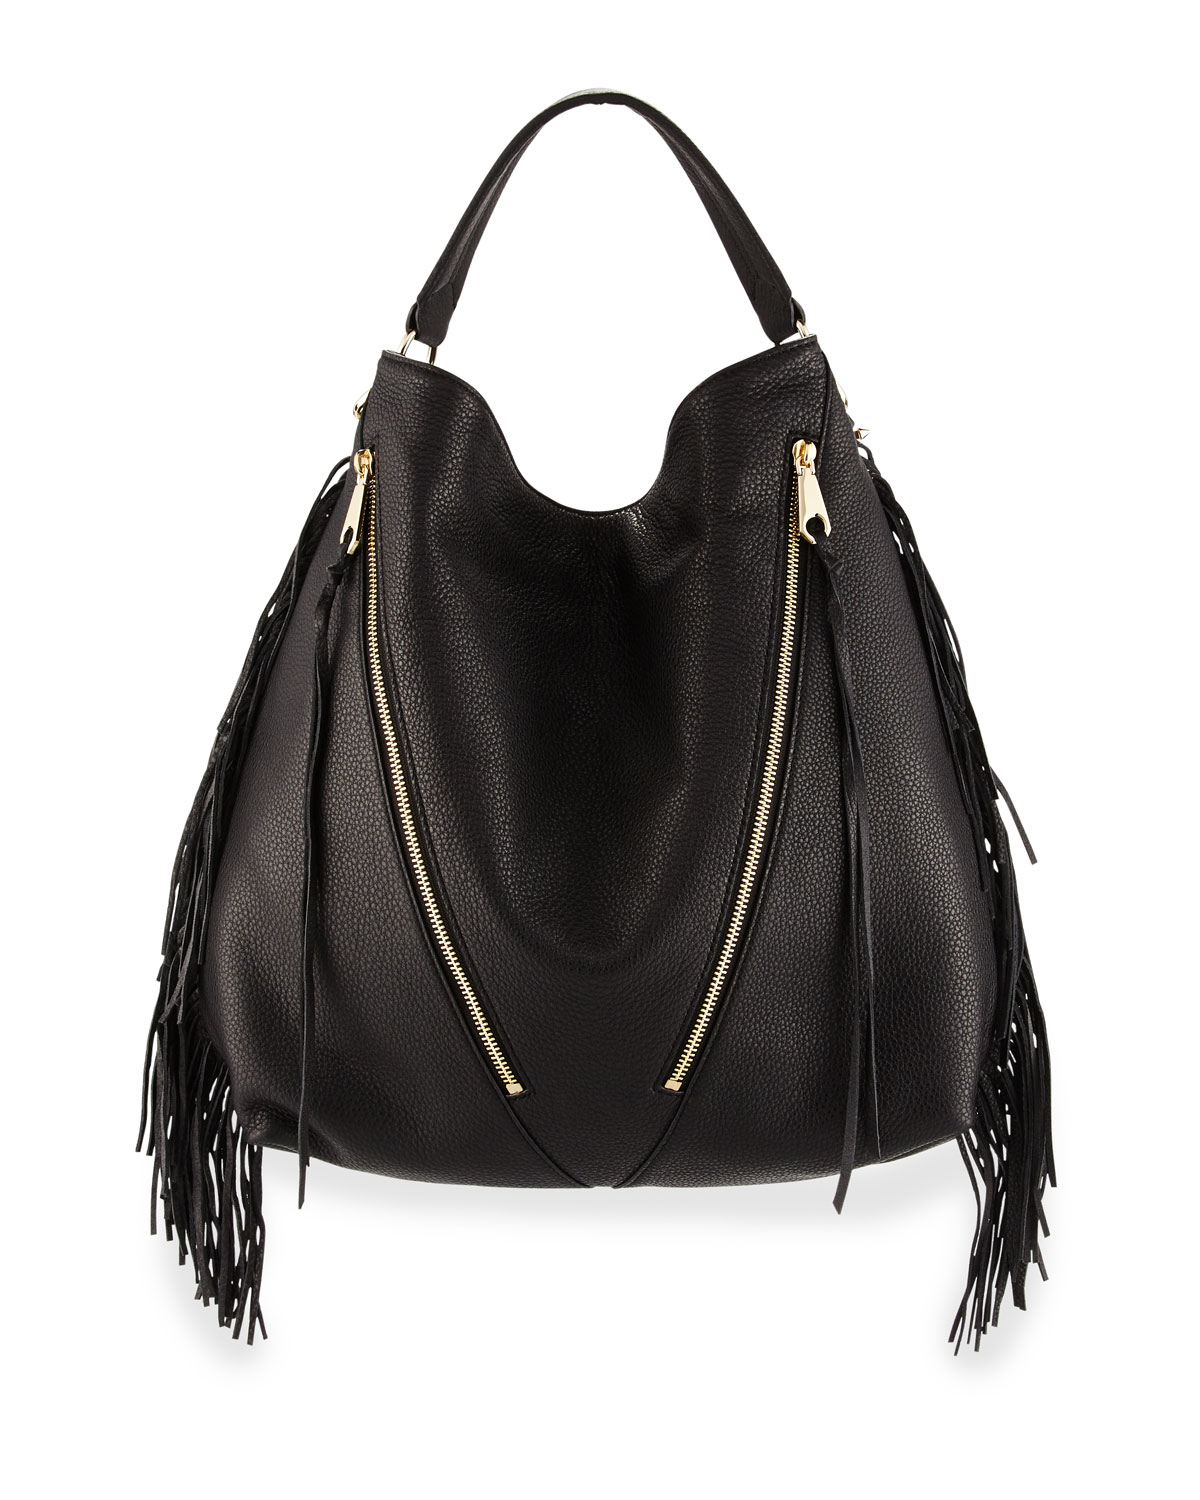 Rebecca minkoff Fringe Moto Leather Hobo Bag in Black | Lyst